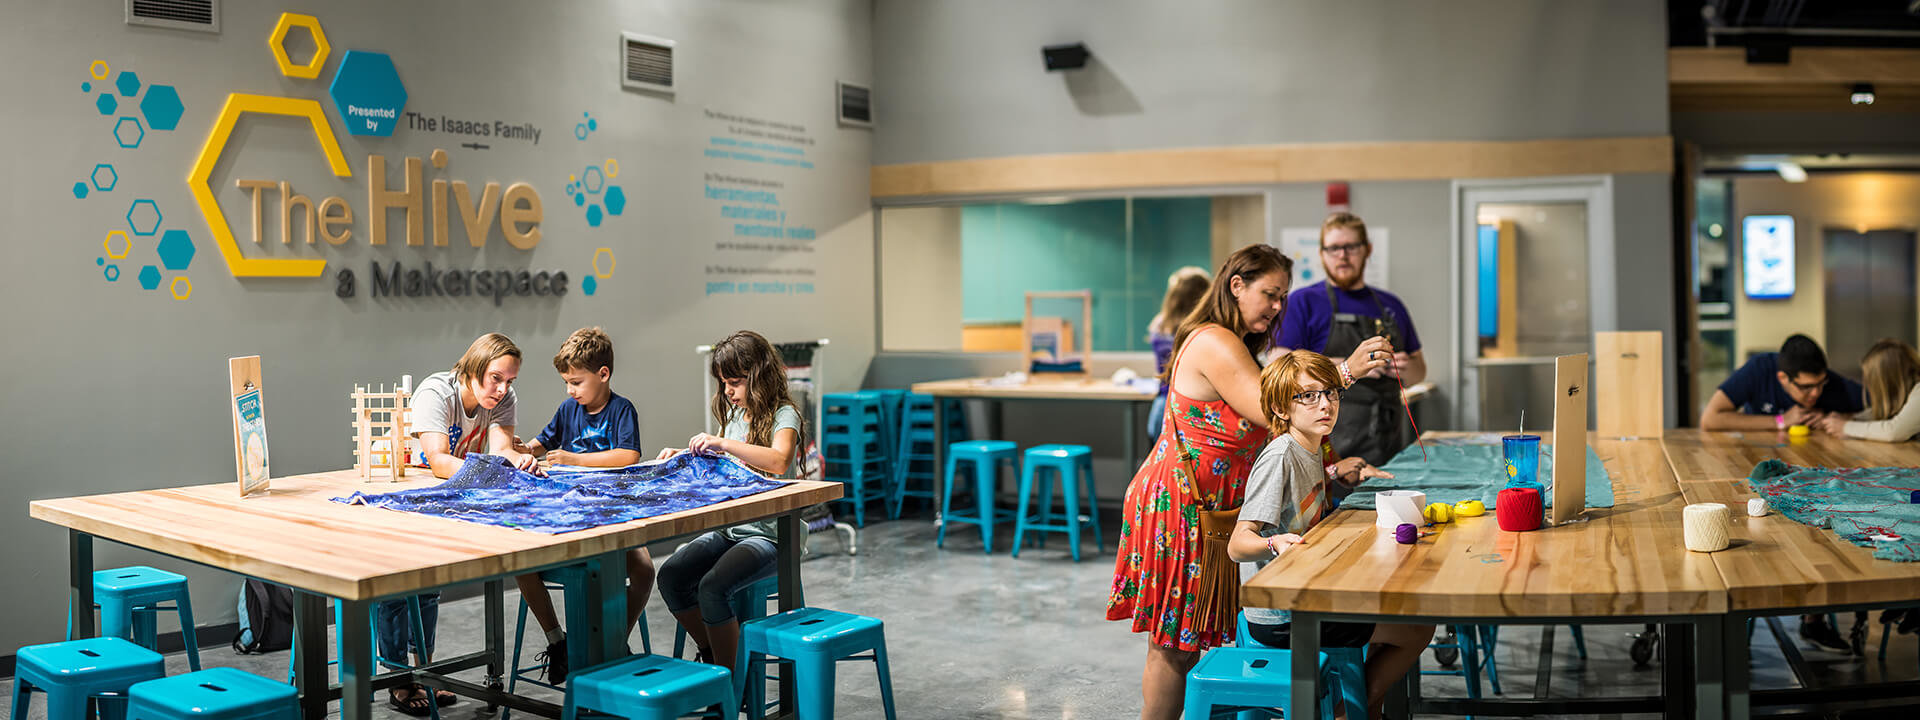 Wide view of several people working at sewing crafts on tables in The Hive.